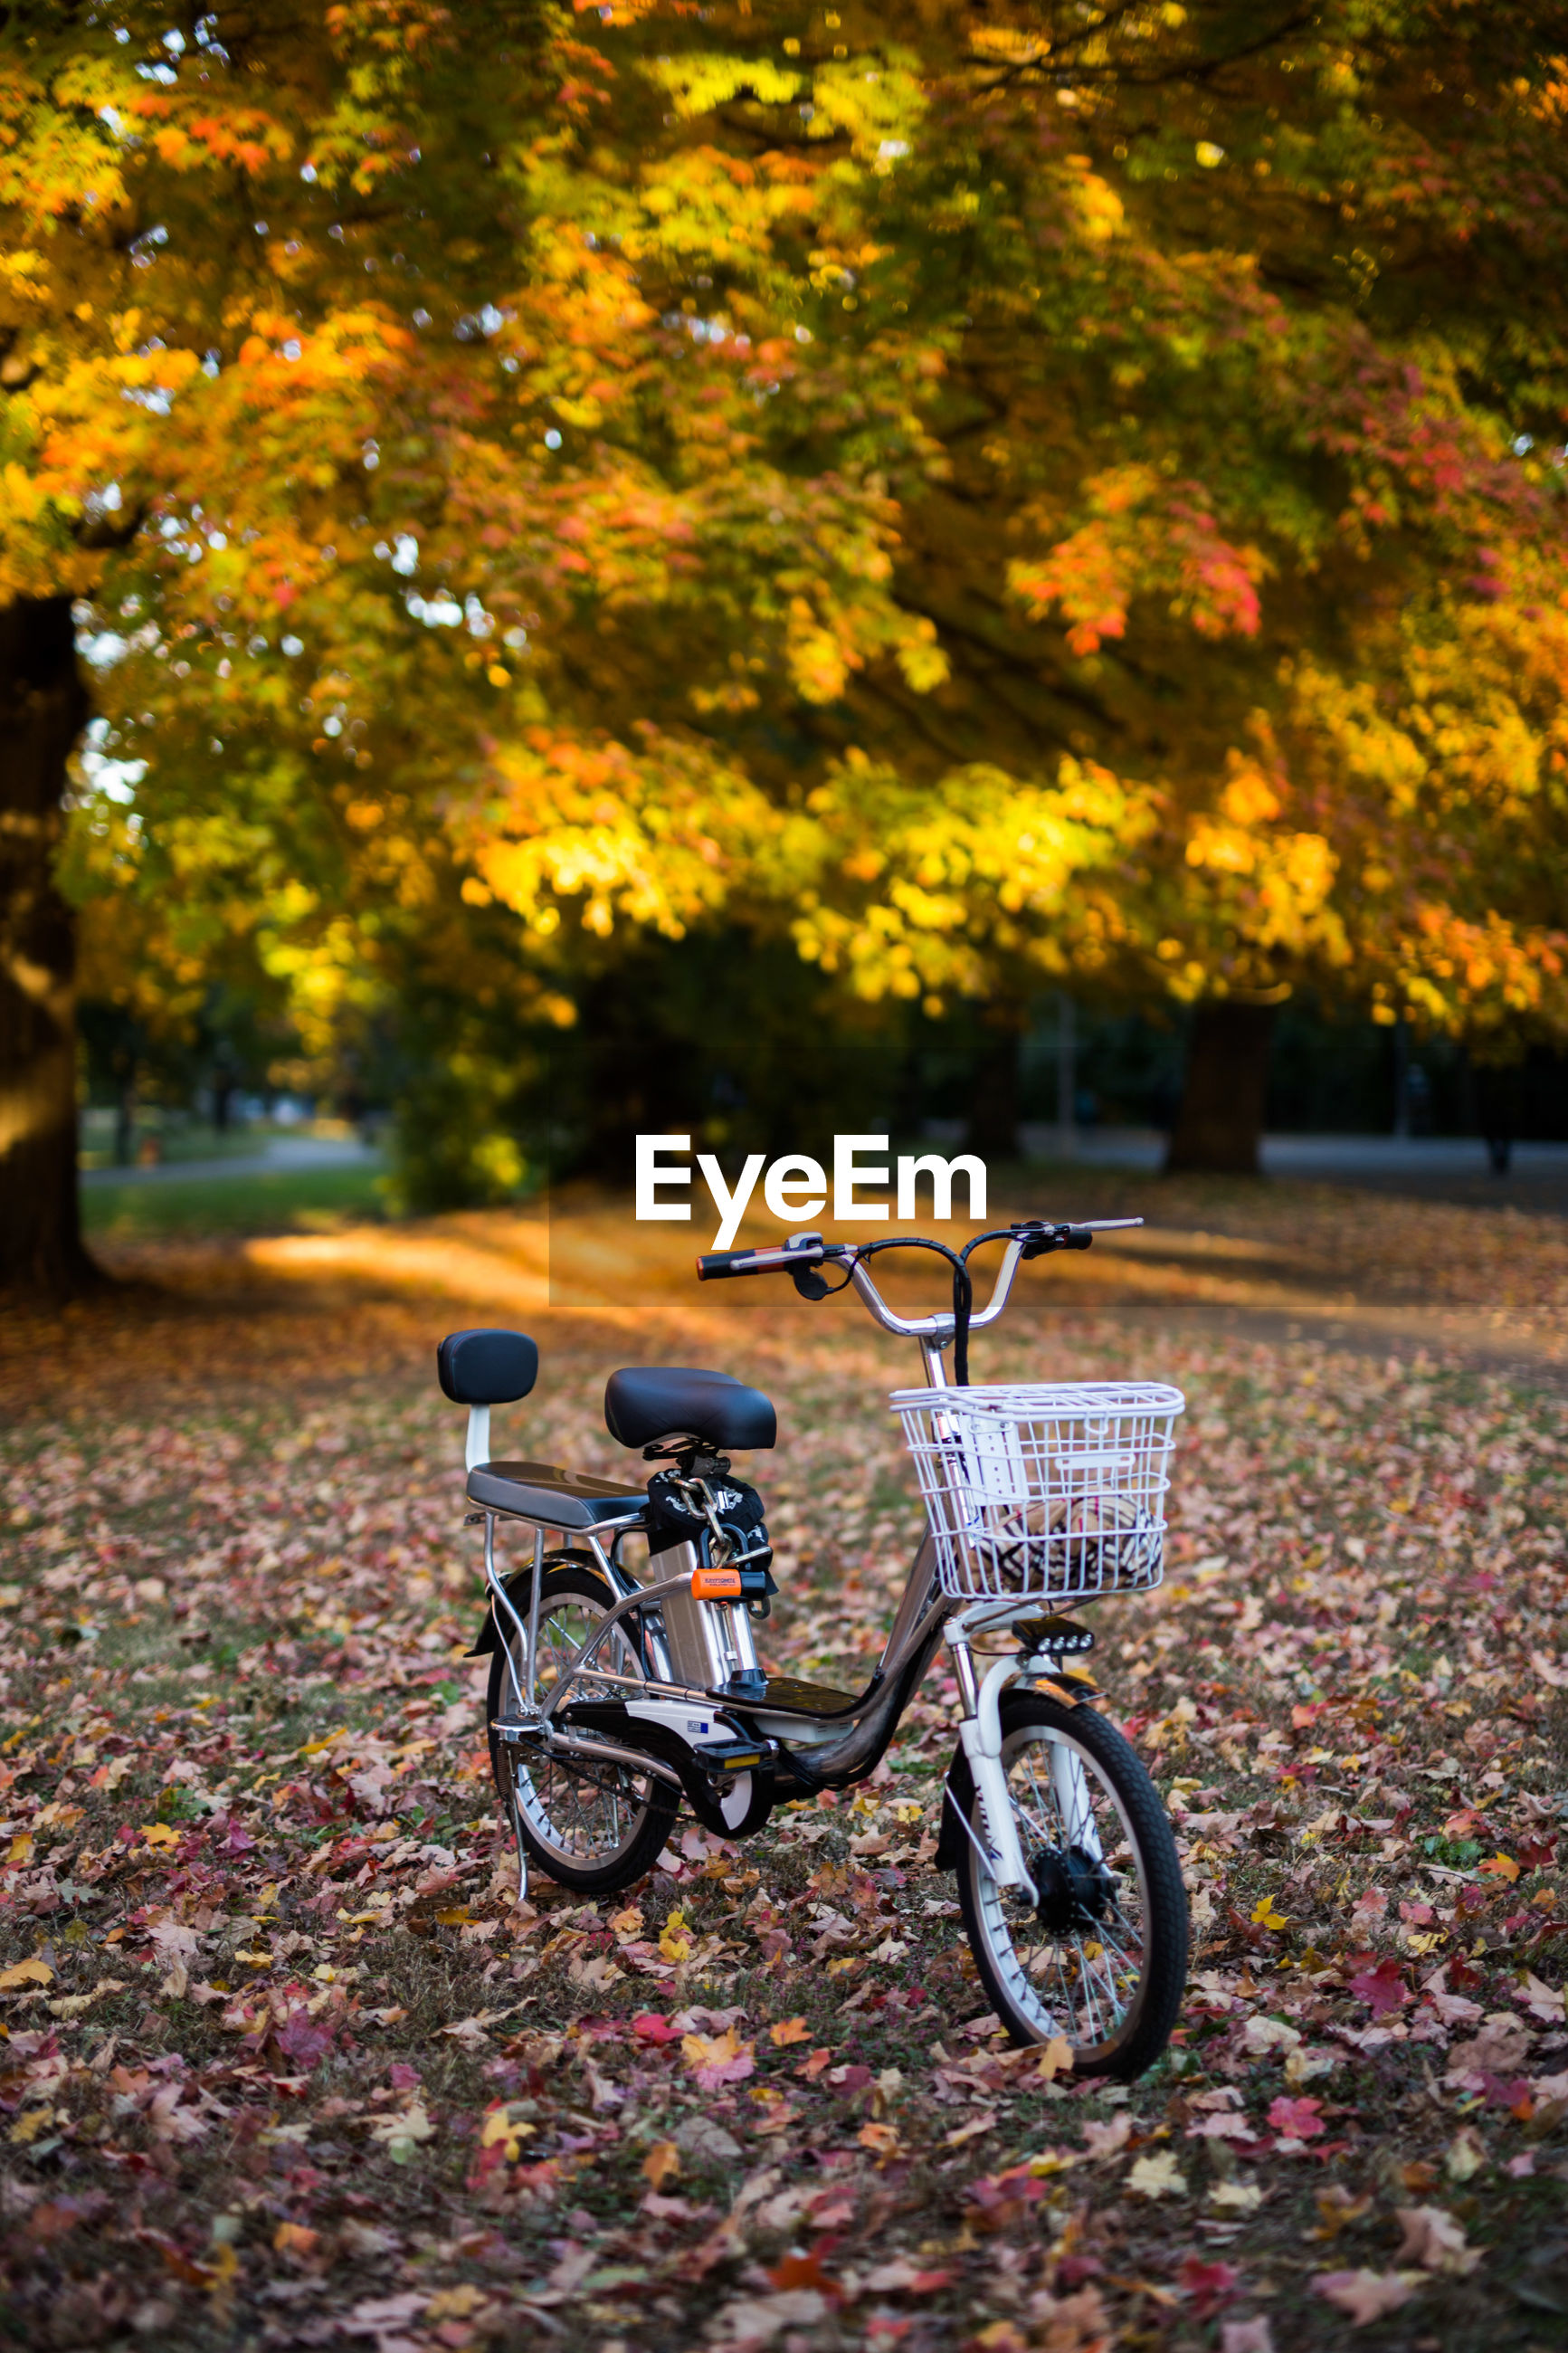 Bicycle parked on footpath during autumn